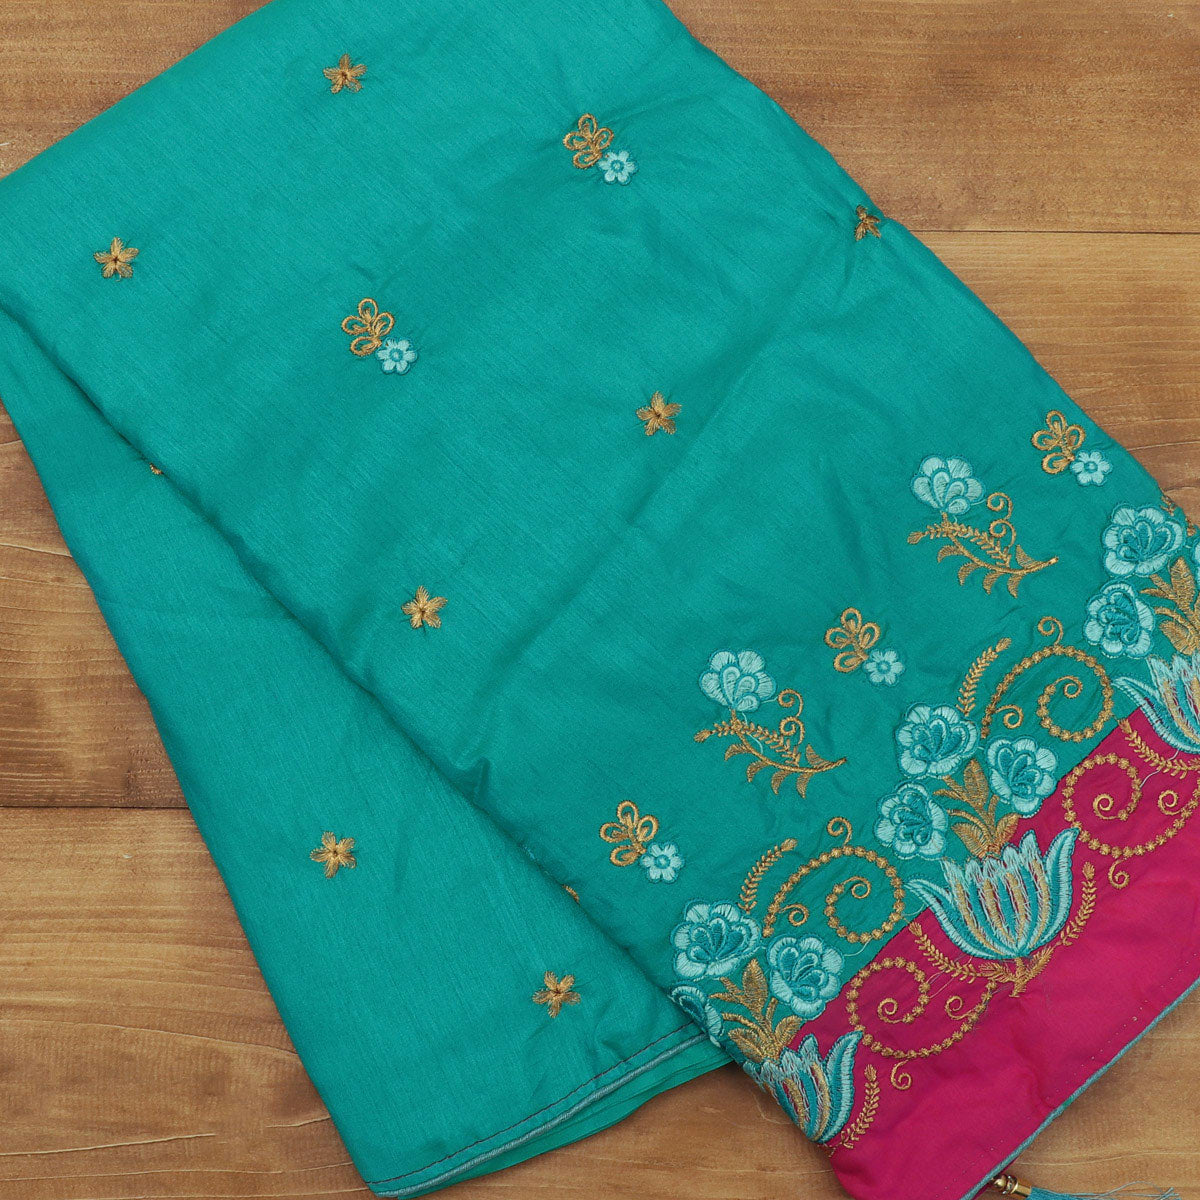 Sana Silk Saree Sky blue with gold Embroidery and Pink with Flower Embroidery